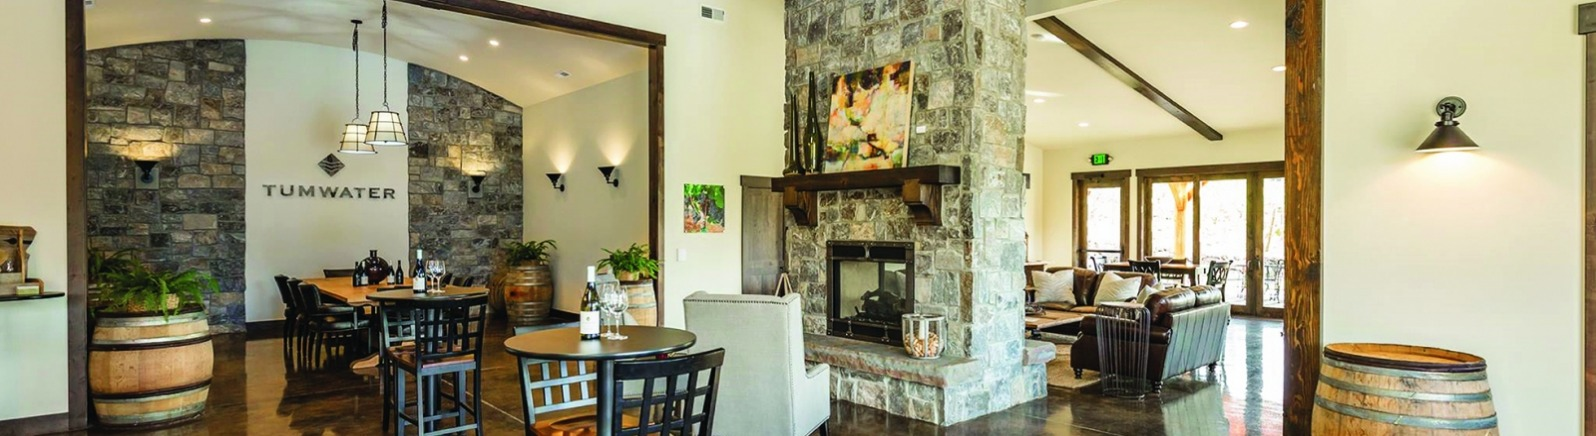 Interior of Tumwater Vineyard tasting room with fireplace